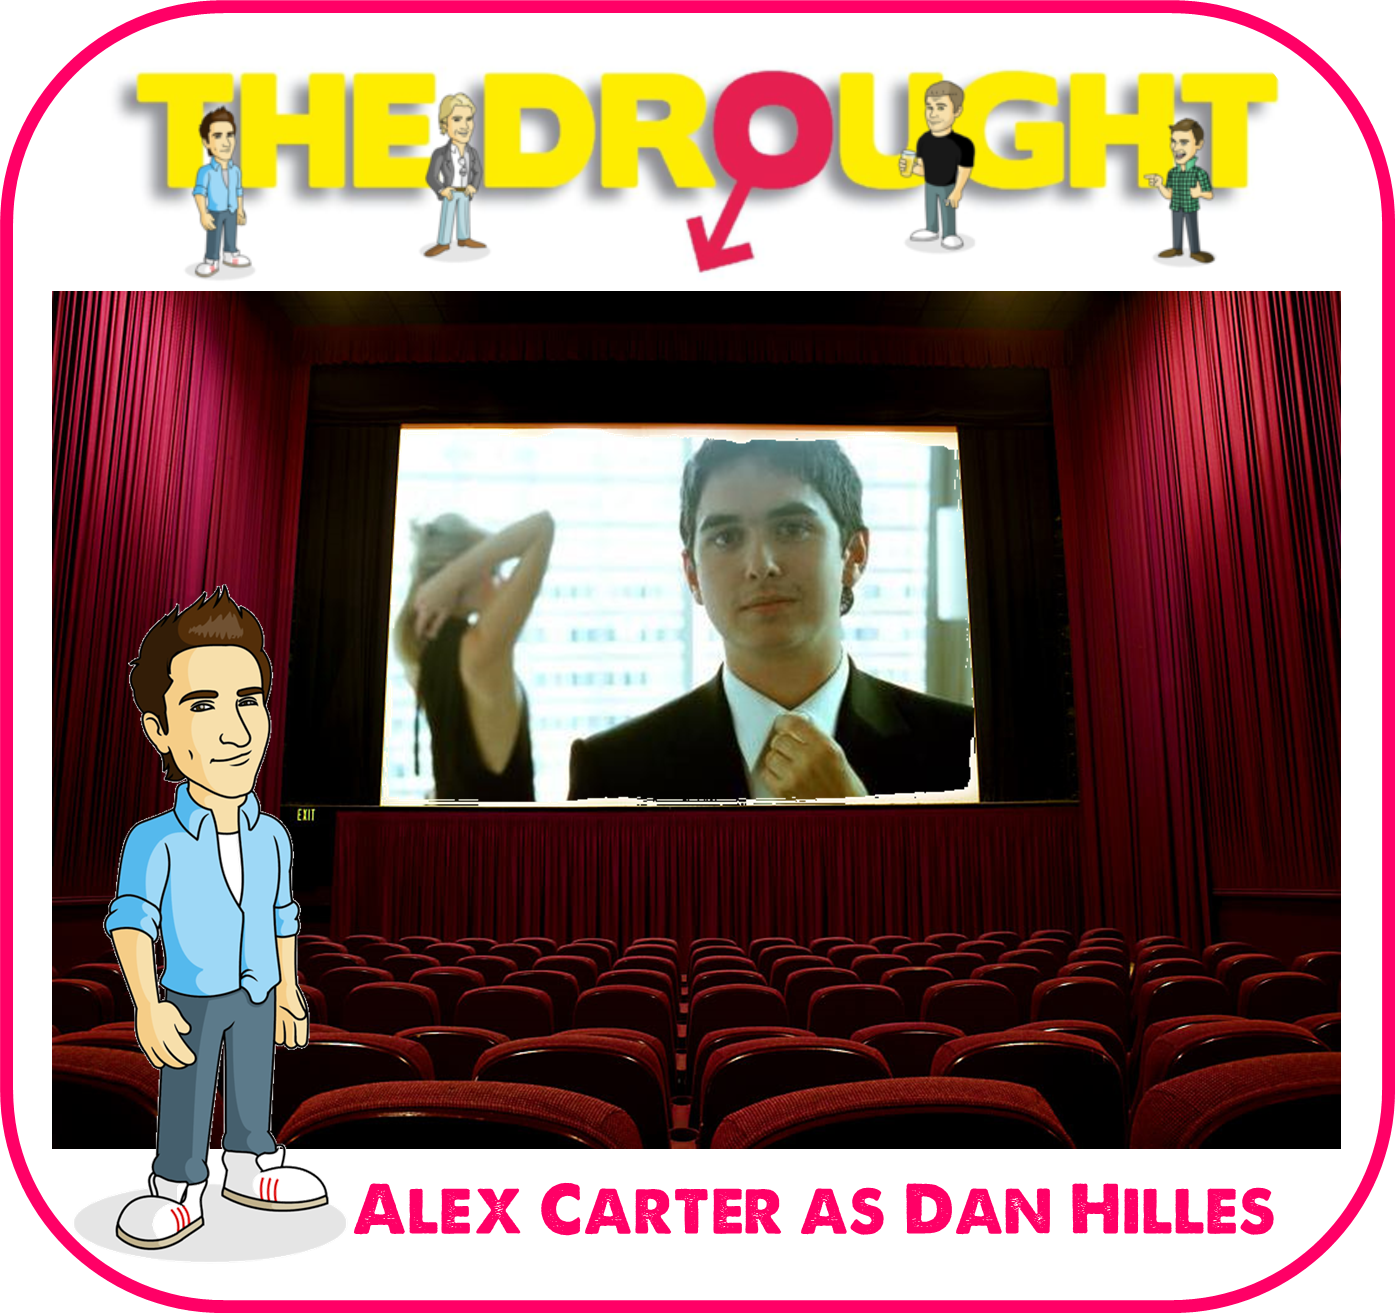 Dan Hilles, Alex Carter, Lee Hunter, Hollyoaks, Jamie Hope, Emmerdale, The Drought, Lad Lit, Steven Scaffardi, funny book, comedy novel, book about relationships, novel about dating disasters, lad lit, ladlit, dick lit,